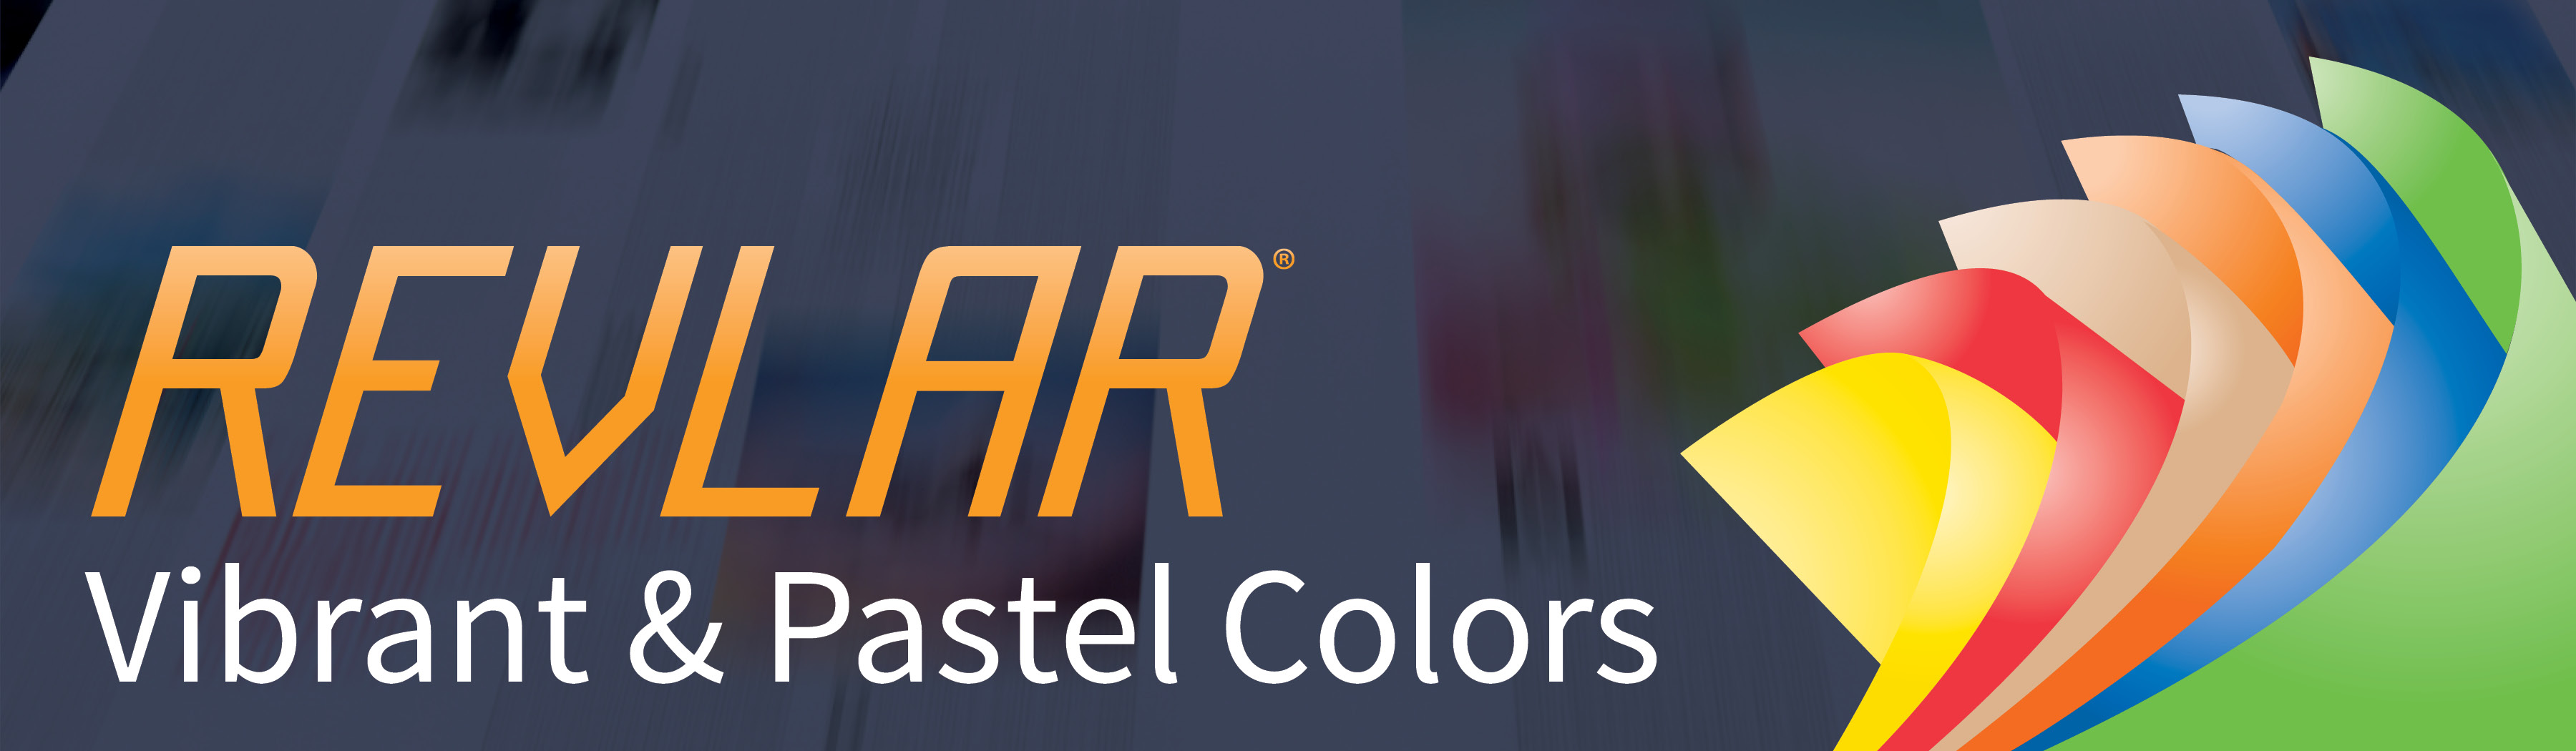 REVLAR Waterproof Colors